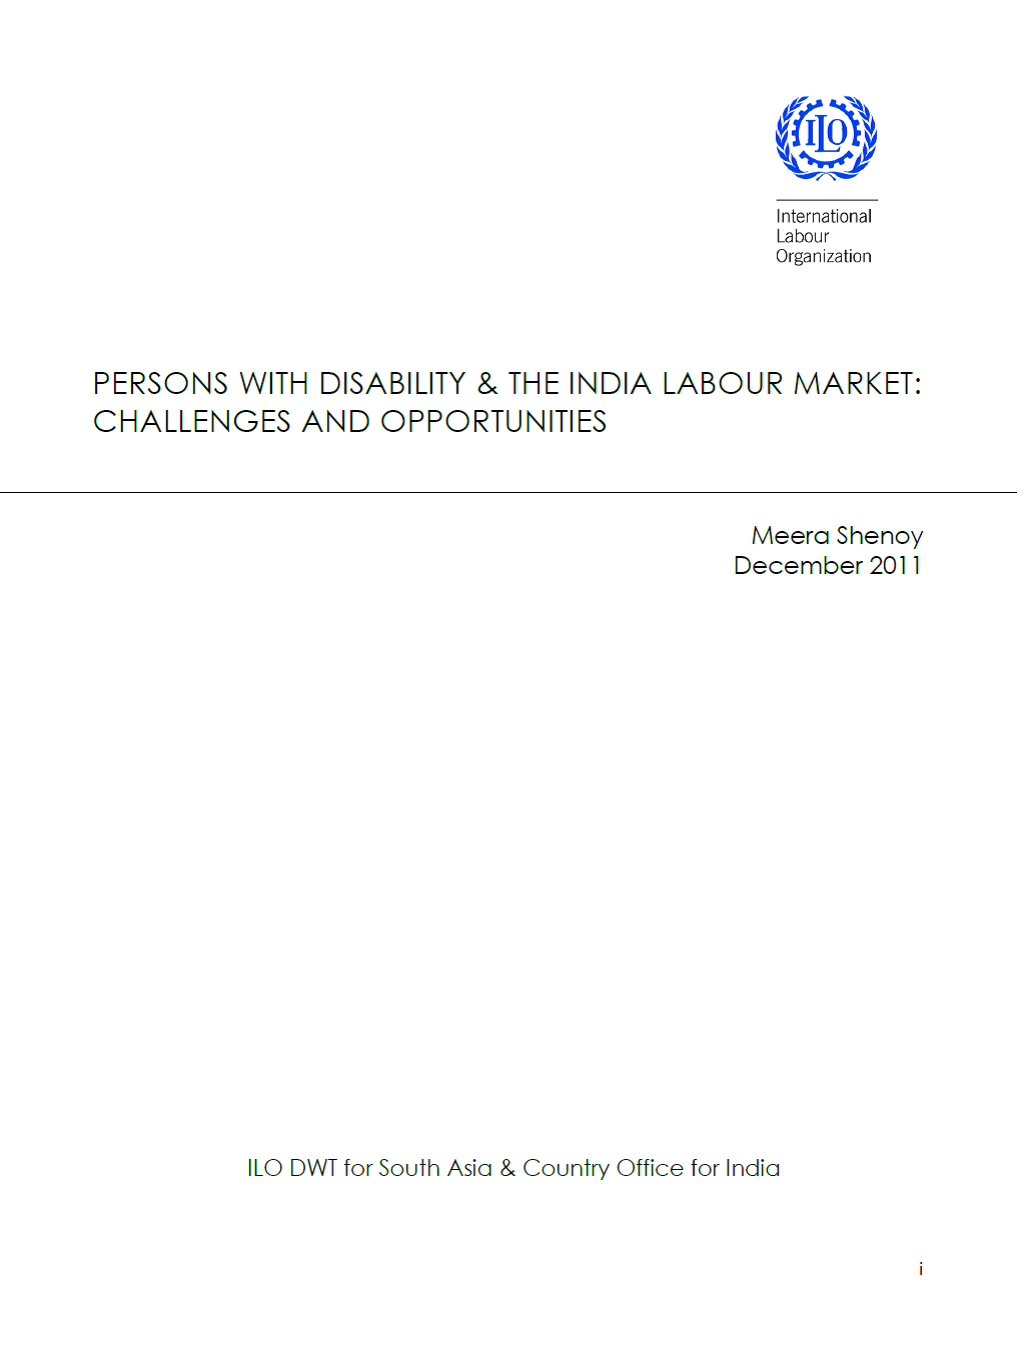 PERSONS WITH DISABILITY & THE INDIA LABOUR MARKET: CHALLENGES AND OPPORTUNITIES